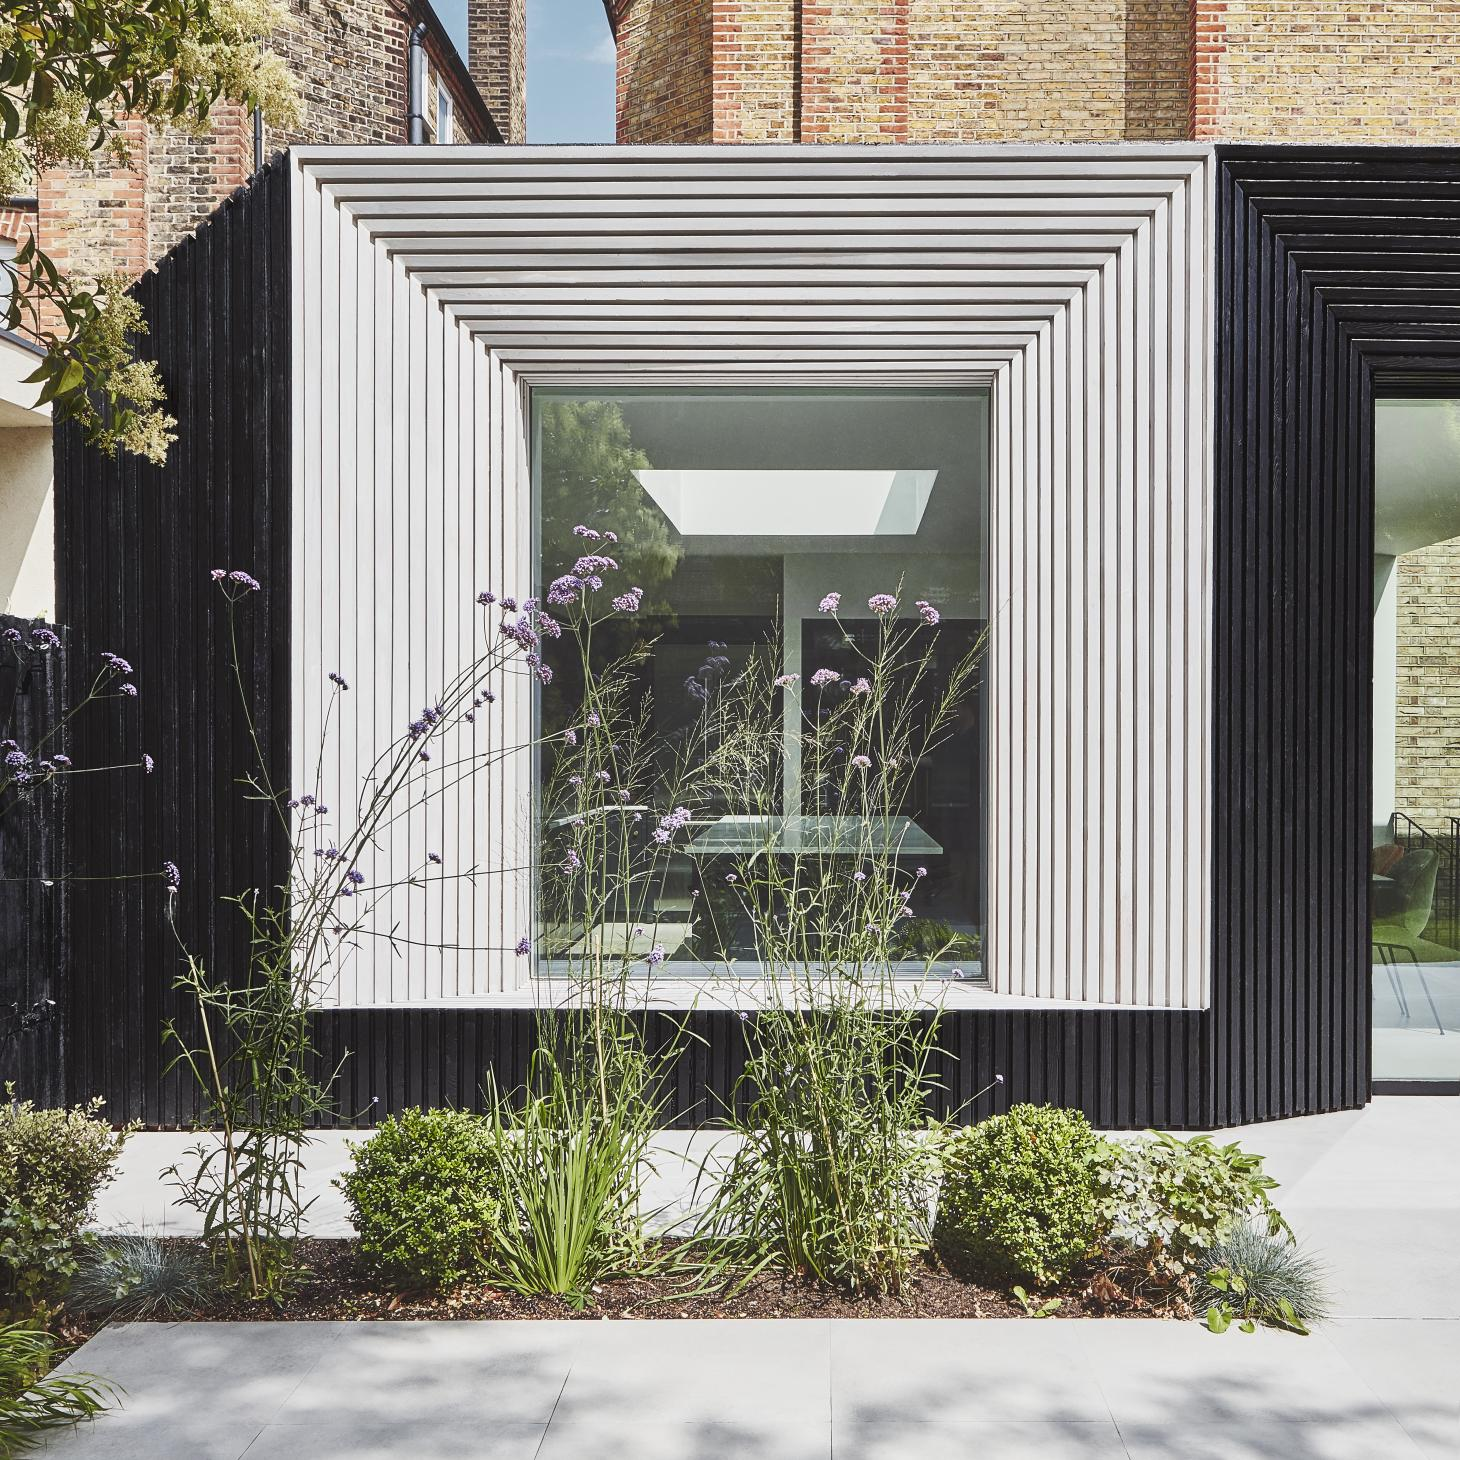 wood clad exterior detail at Nightingale Triangle house in London